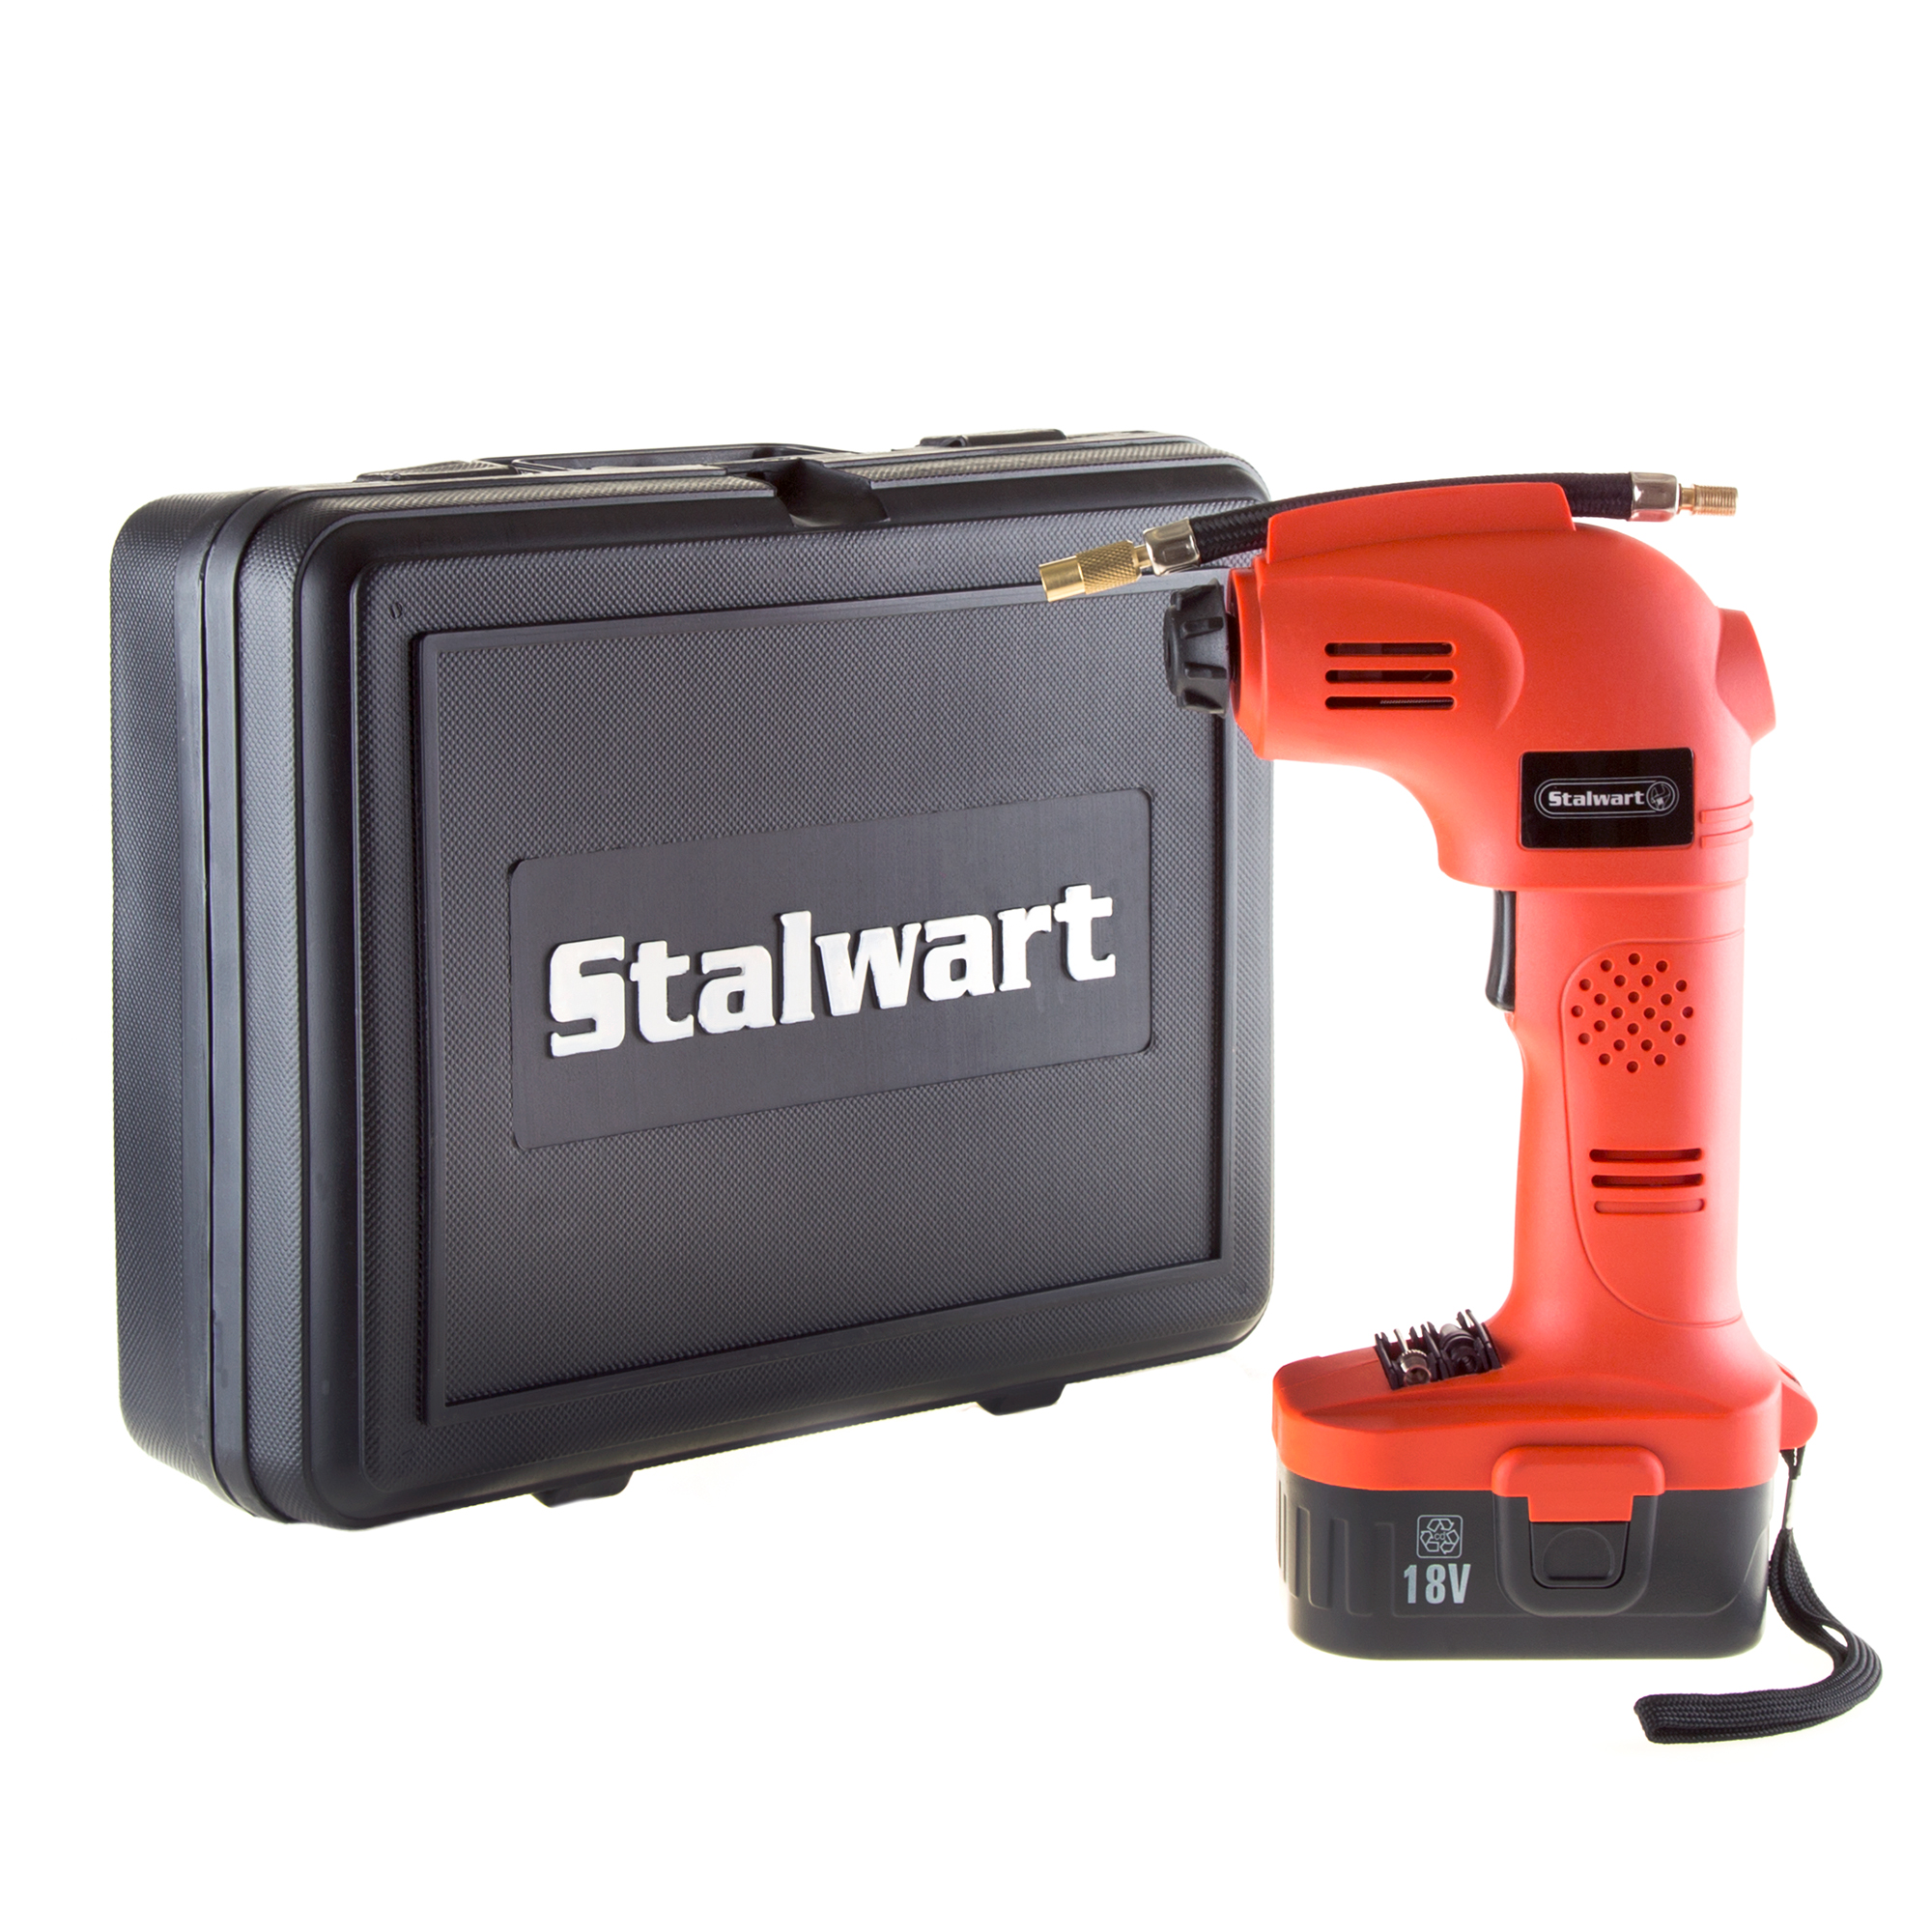 18V Cordless Multi Purpose Air Compressor Tire Inflator by Stalwart by Trademark Global LLC